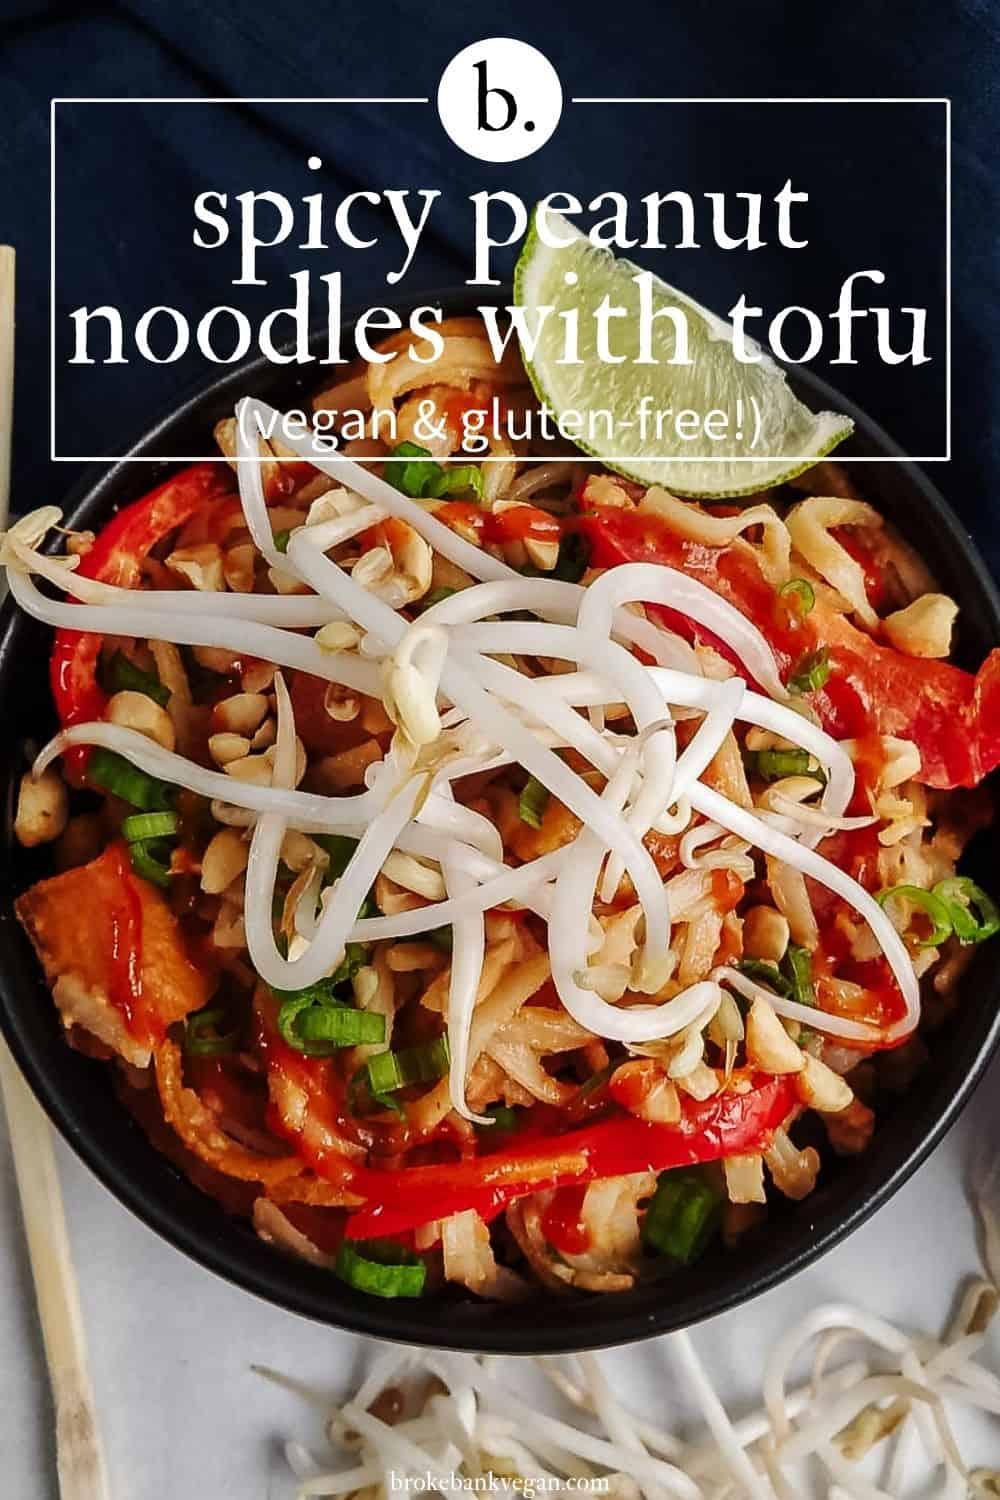 Spicy Peanut Noodles With Tofu